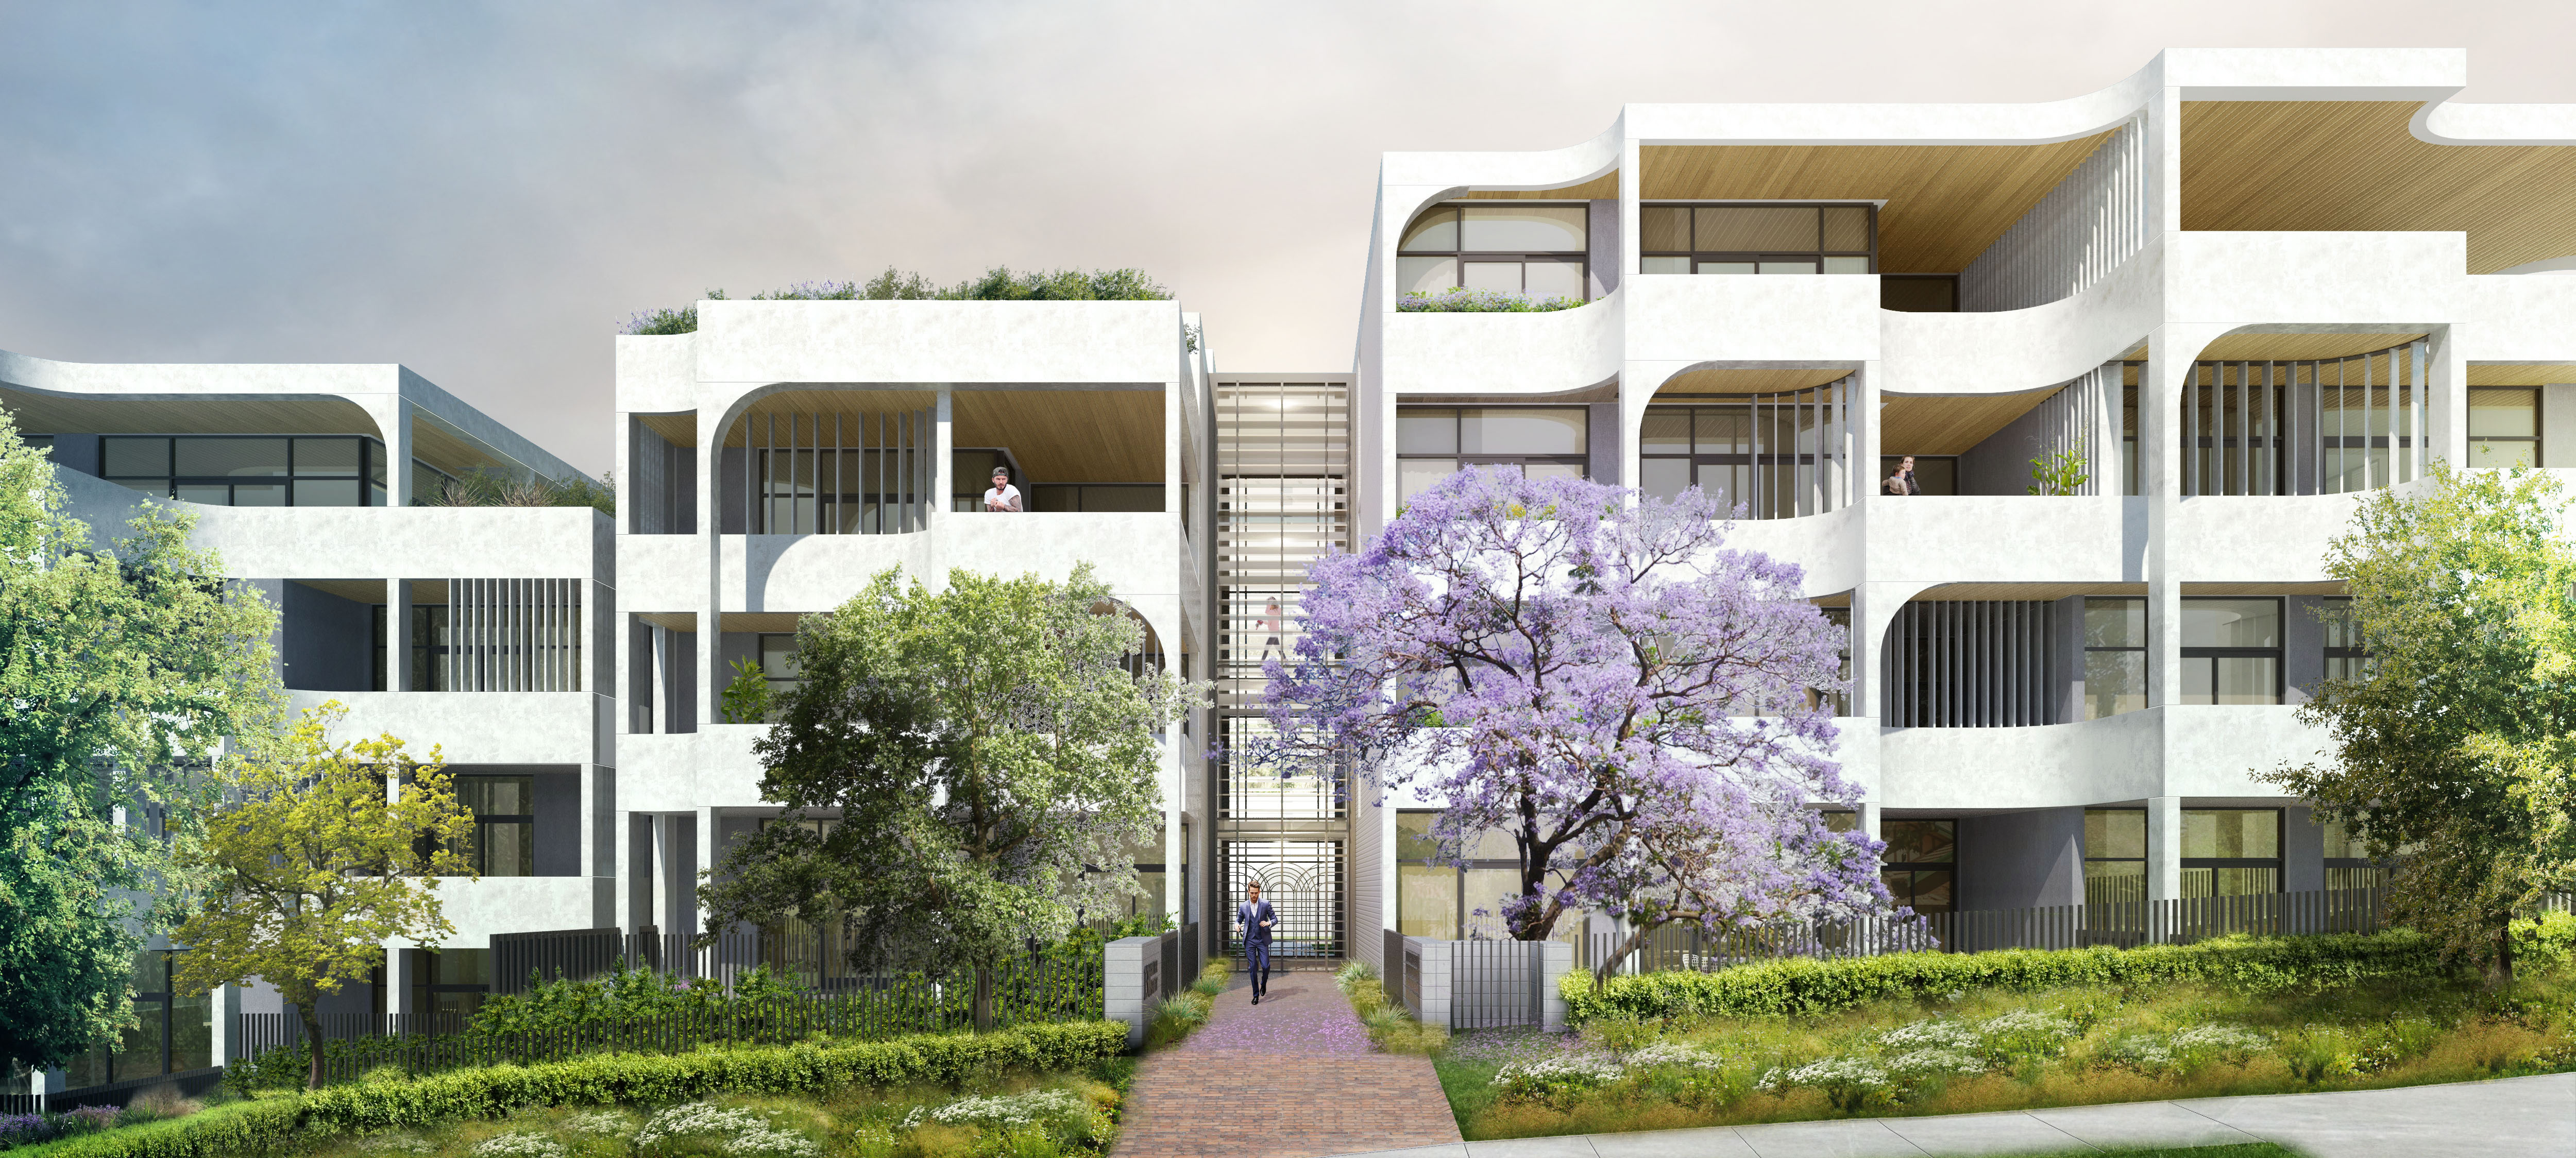 Image for Rothelowman project Archer Terraces